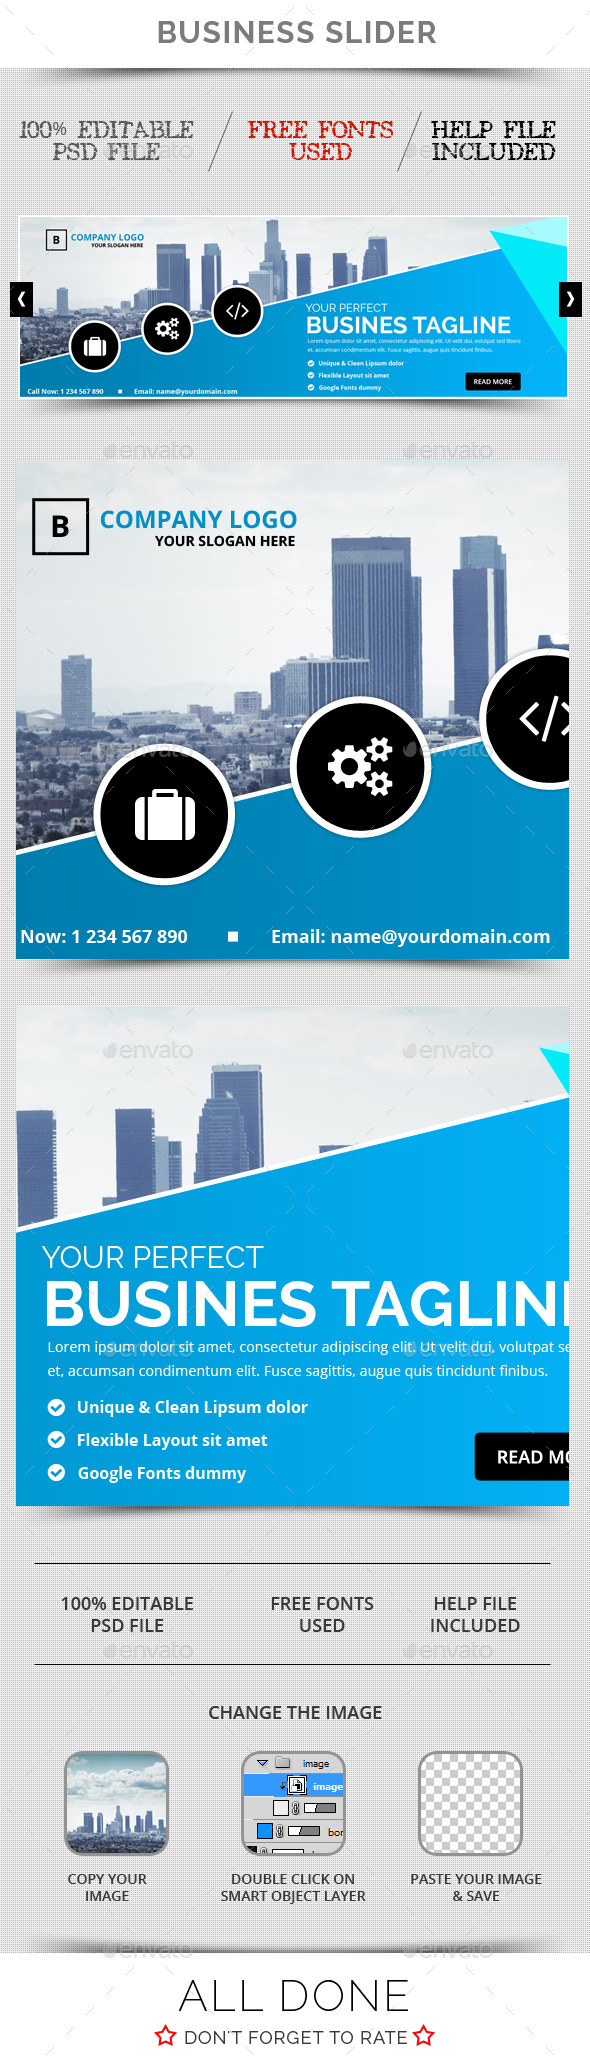 GraphicRiver Business Slider V20 11557380